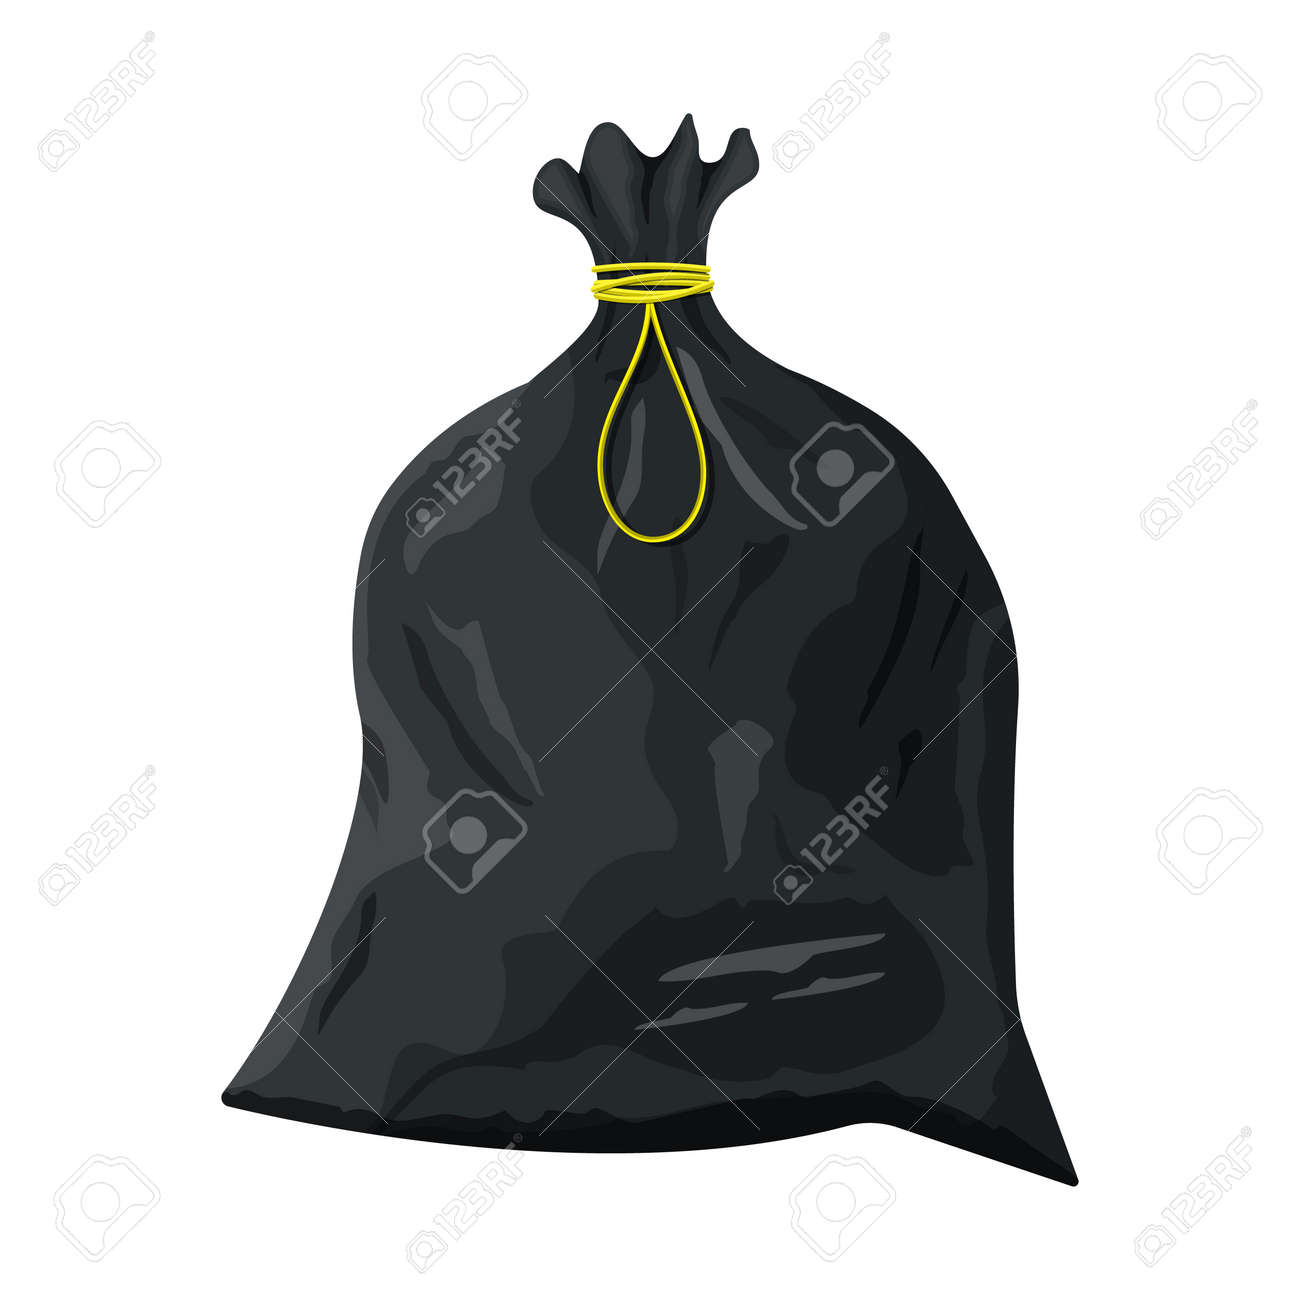 Plastic garbage bag with rope icon. - 84951577